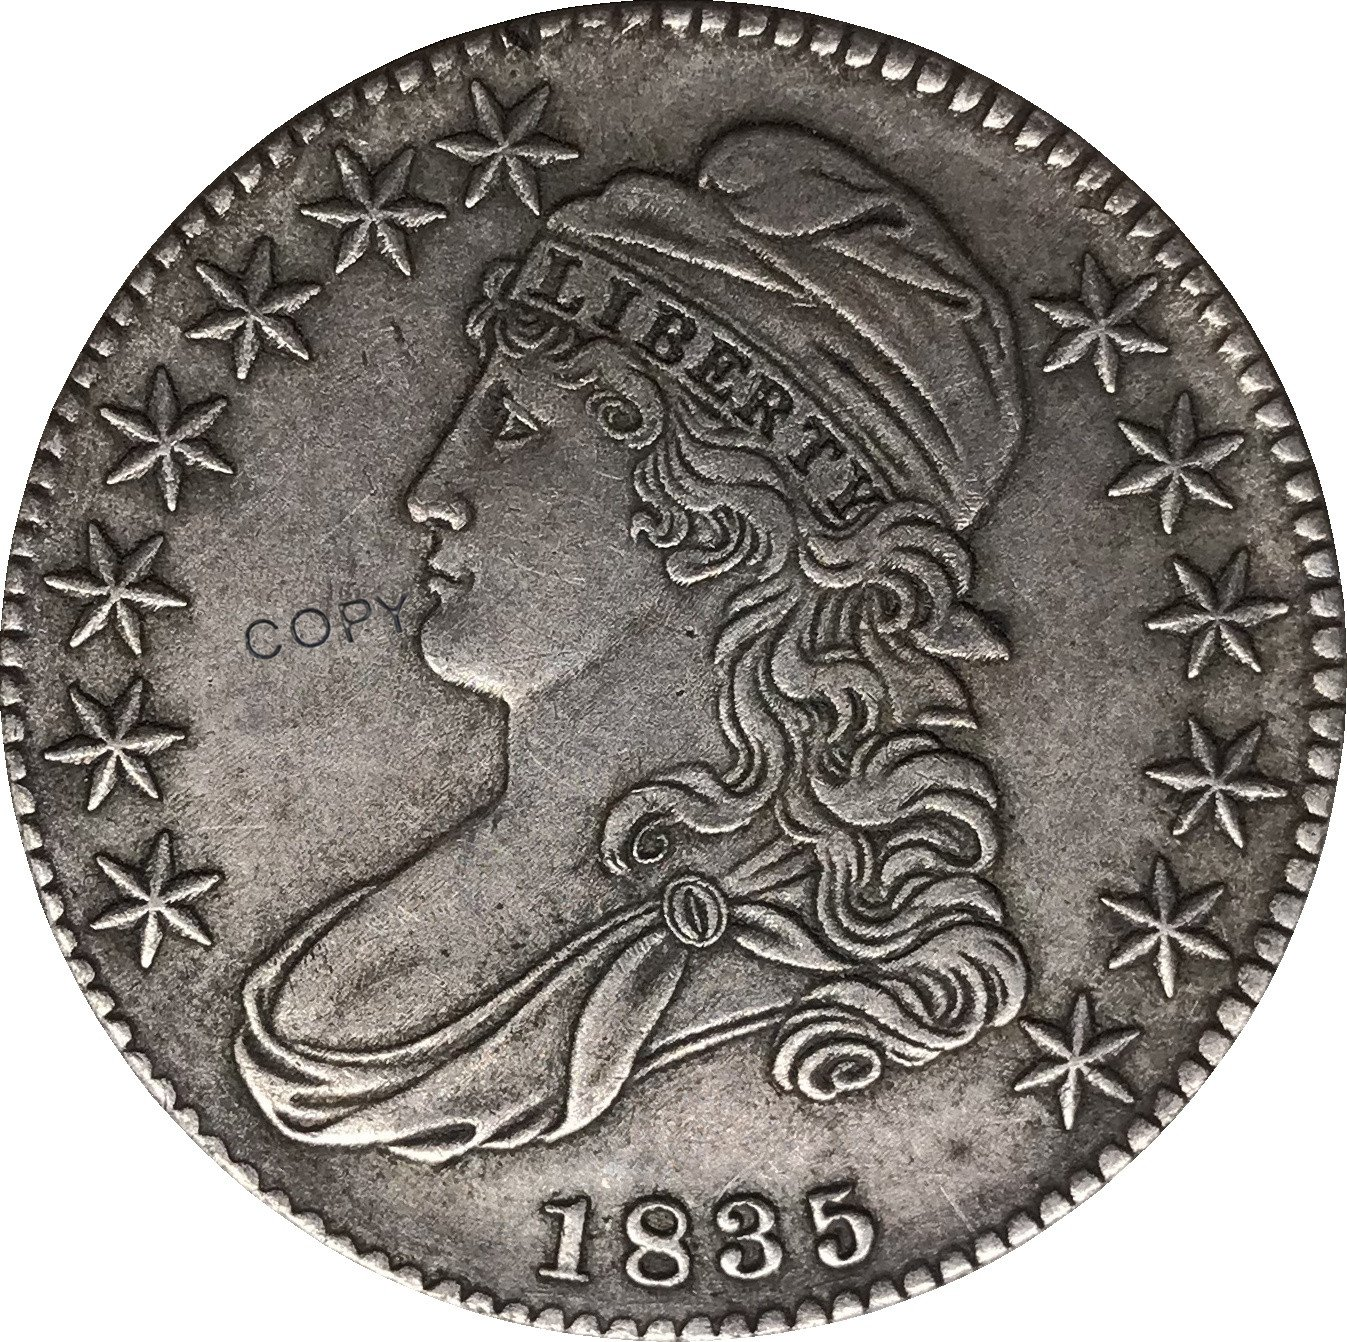 1835 United States 50 Cents ½ Dollar Liberty Eagle Capped Bust Half Dollar Copy Coins